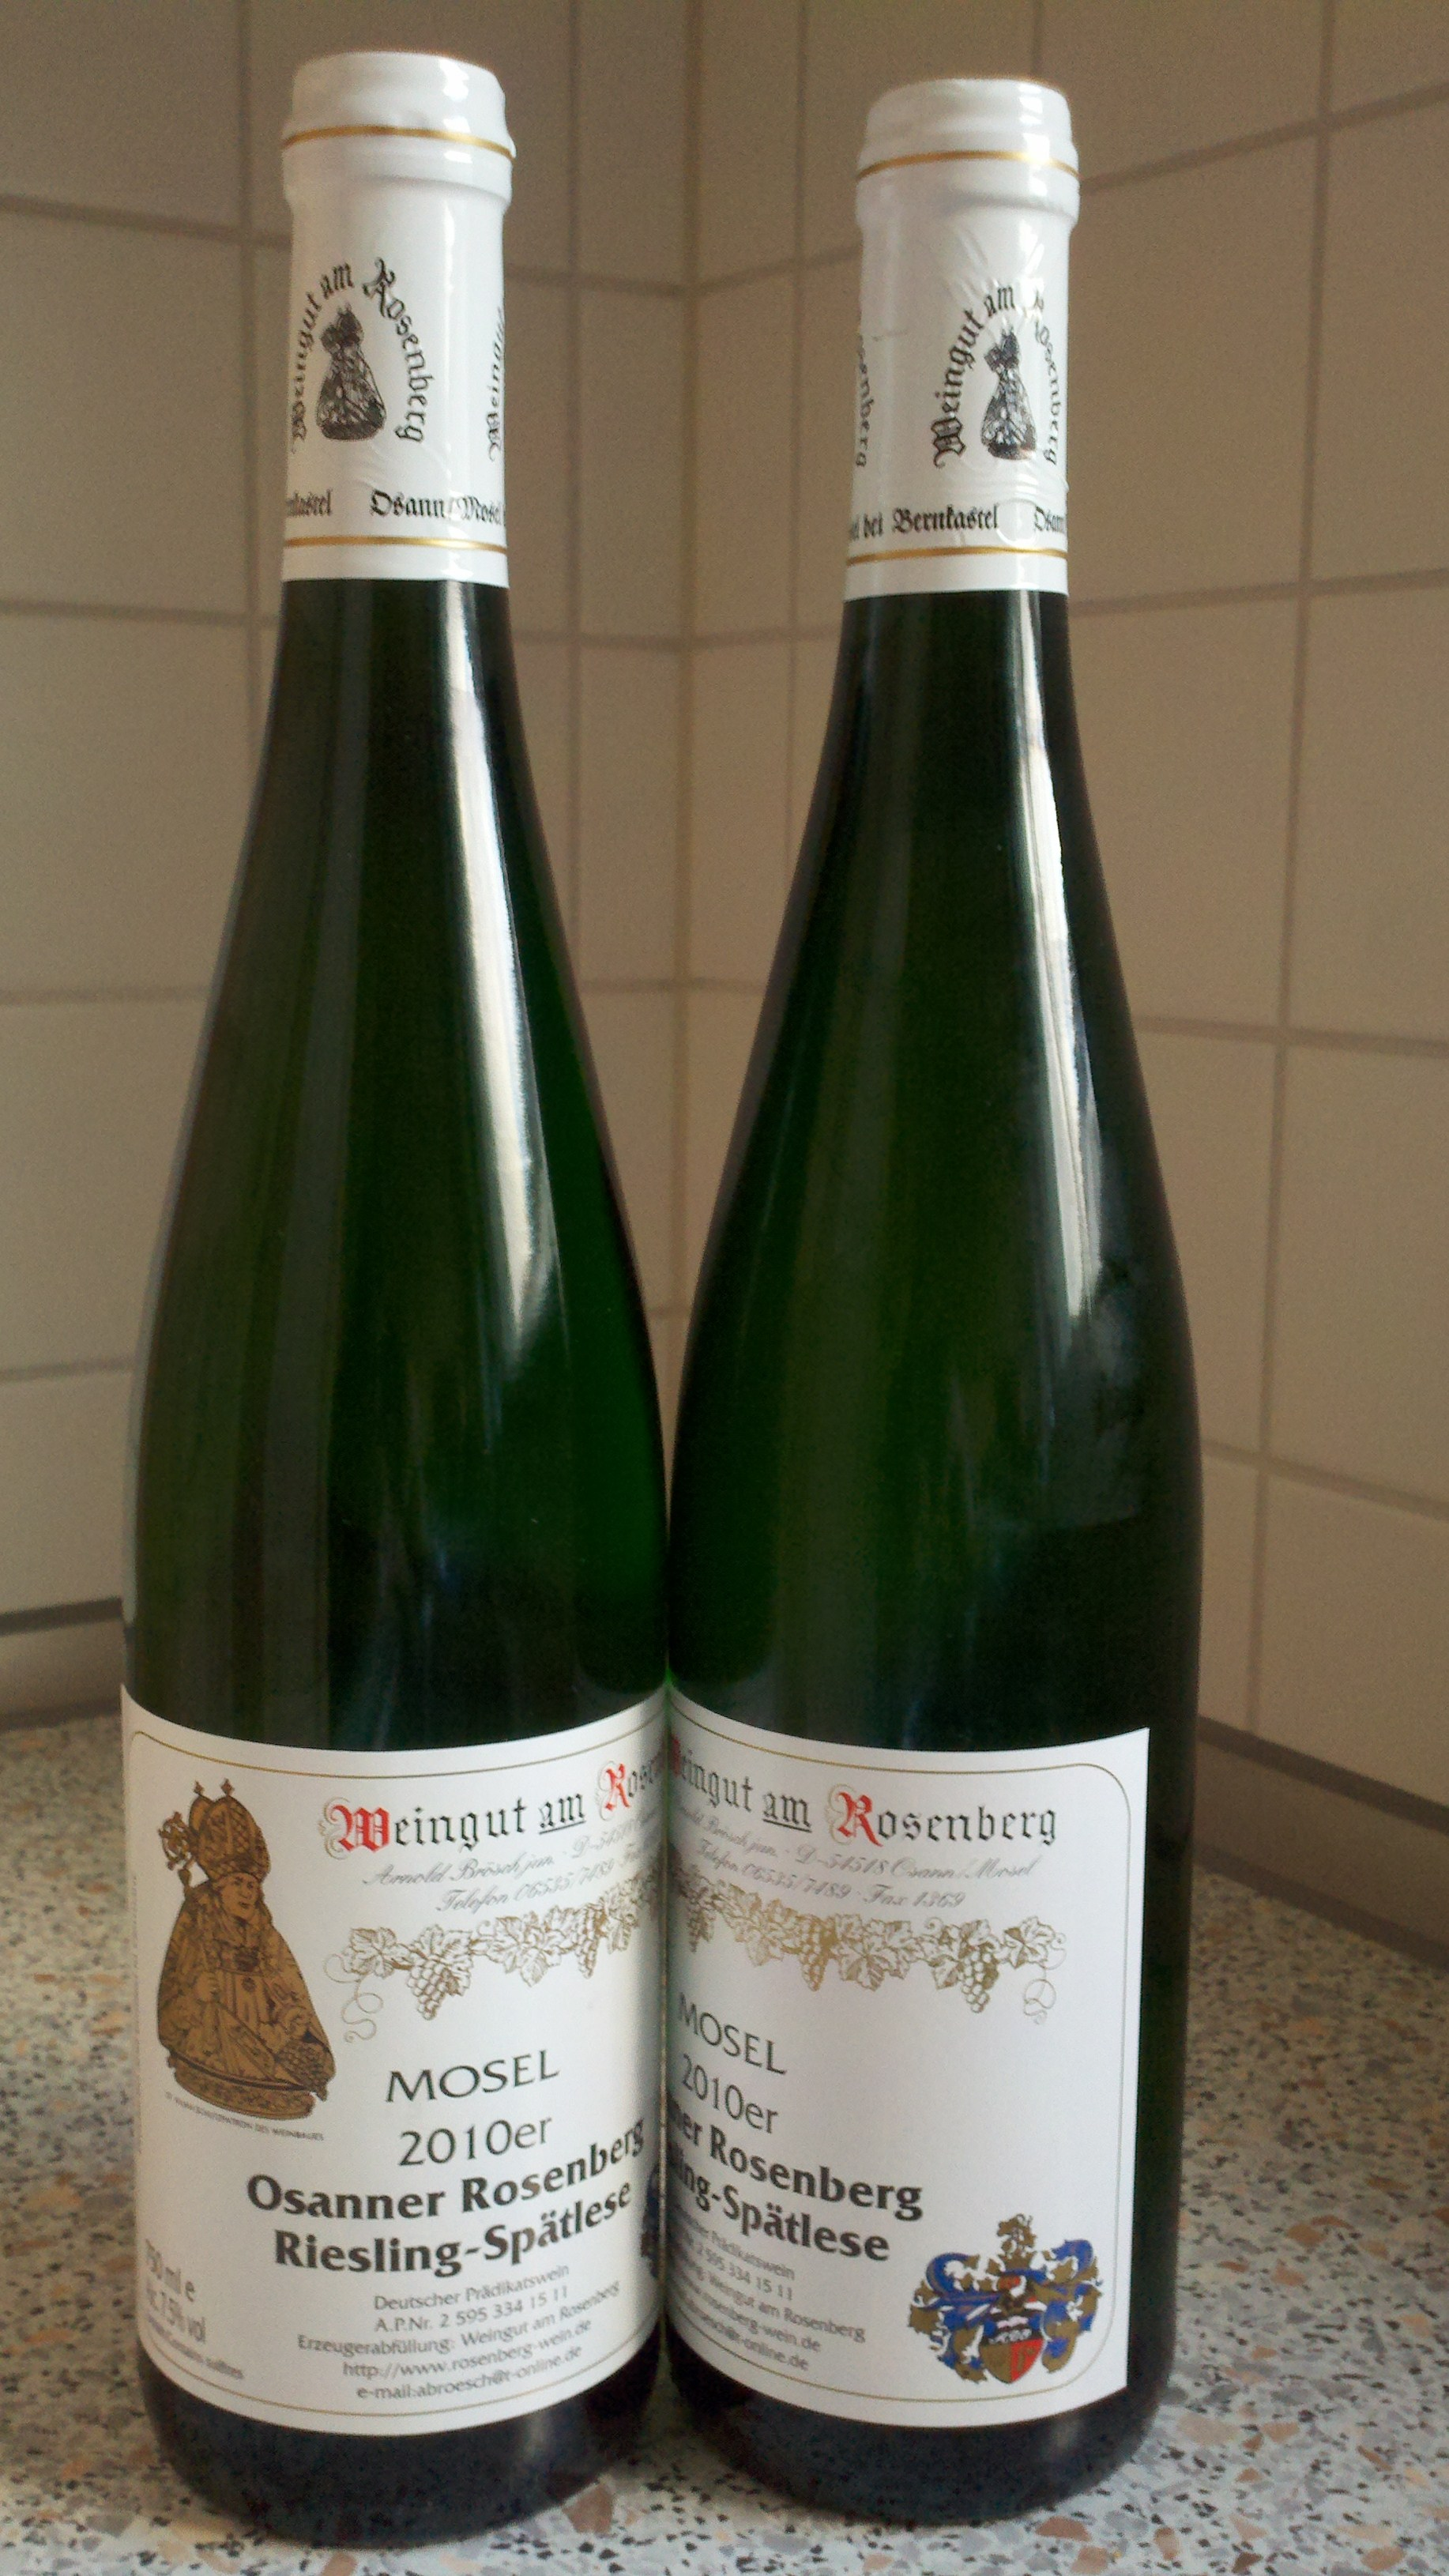 I don't think I need to post a German bottle of Coke again and I don't think Coke in a glass is very interesting, so instead, here is a picture from December 2011 of our first German wine purchase.